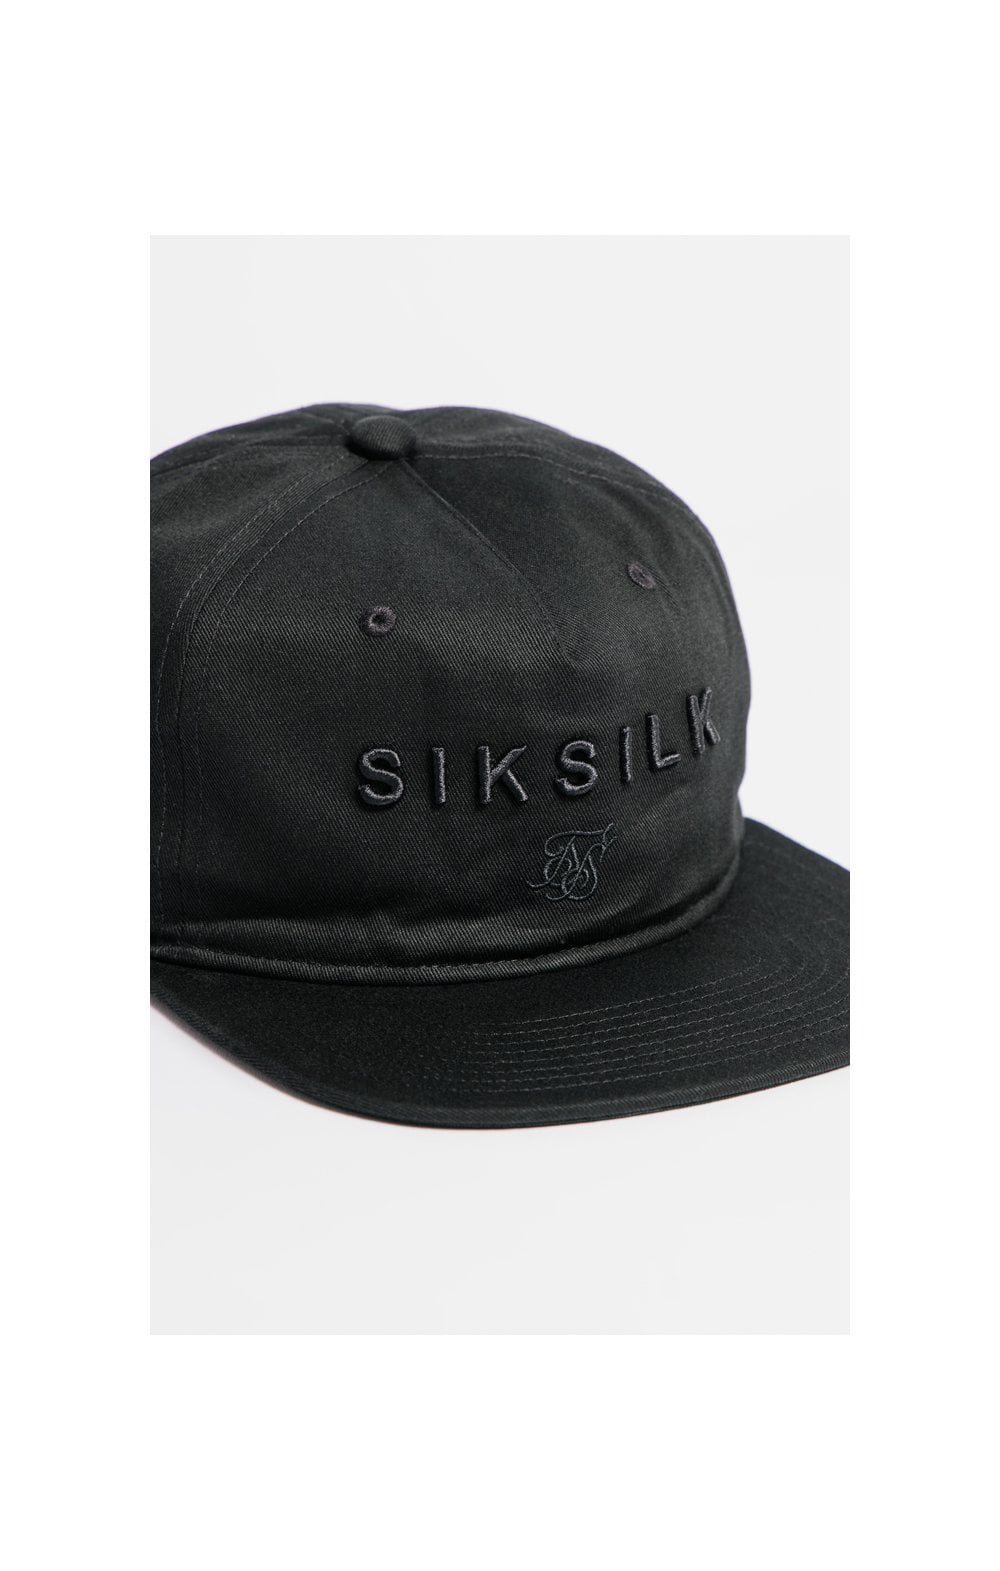 SikSilk Cotton Snap Back - Black